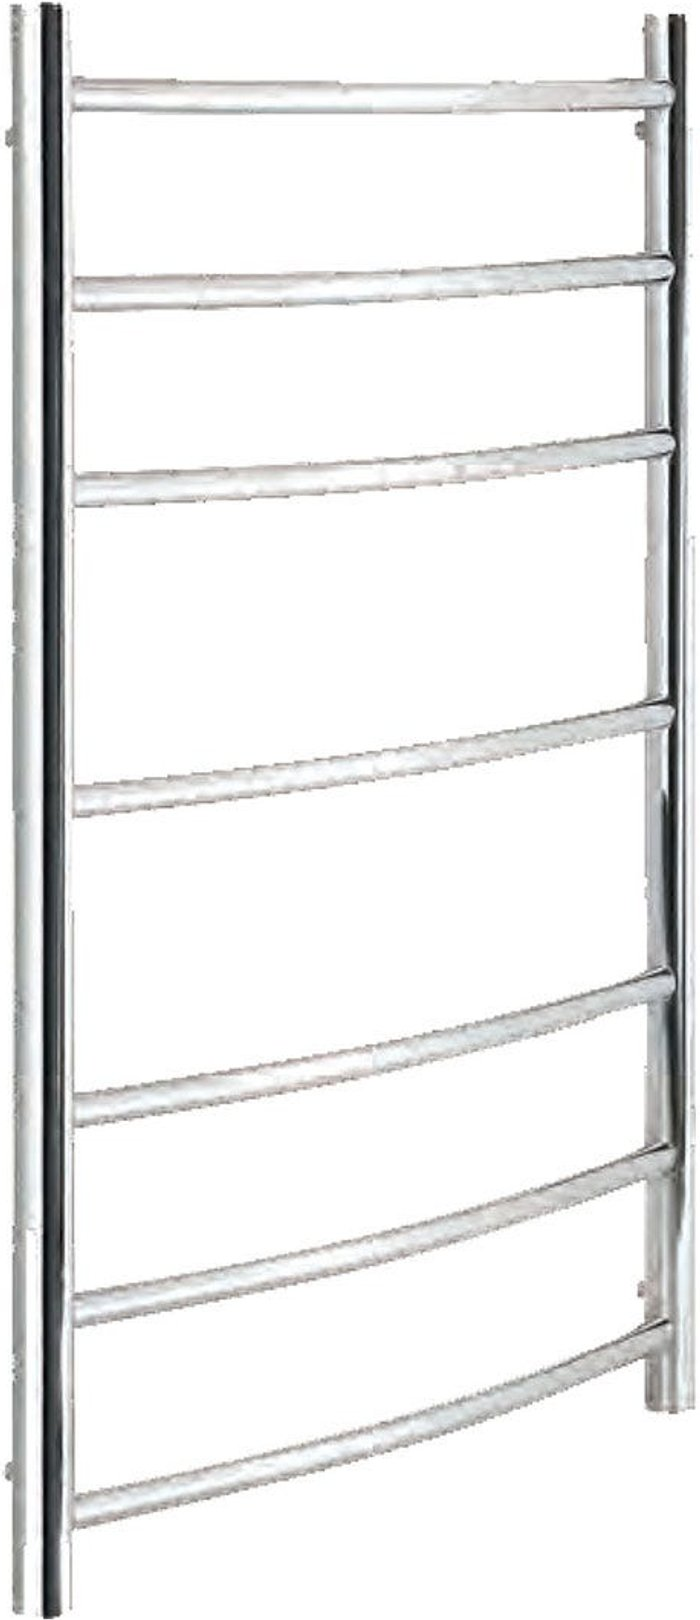 Towelrads Towelrads Heating Style Walton 800mm x 600mm Dry Electric Stainless Steel Heated Towel Warmer - Polished